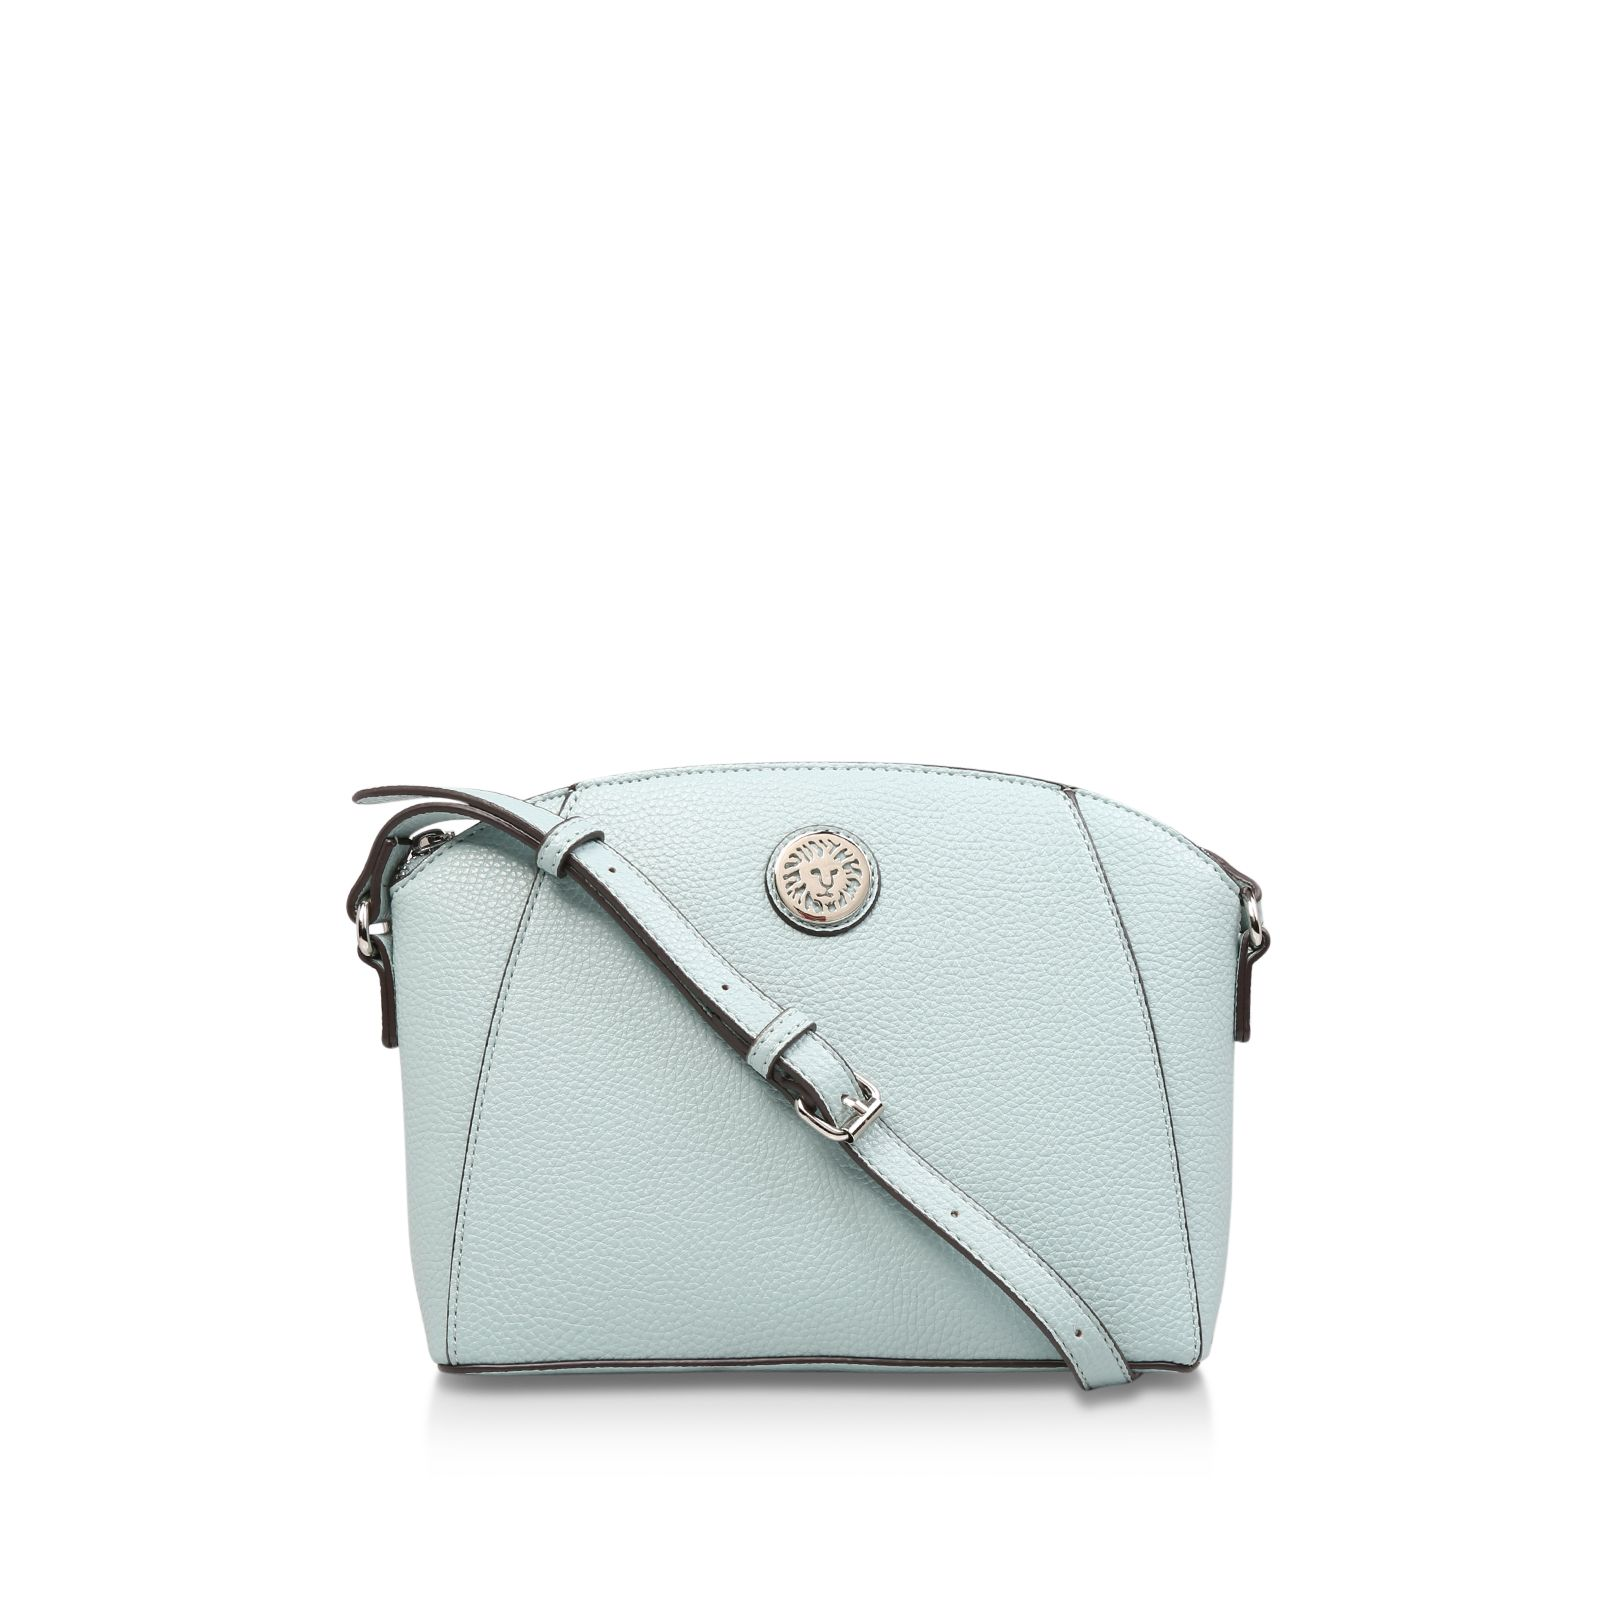 Anne Klein Classic Curves Crossbody Bag, Turquoise